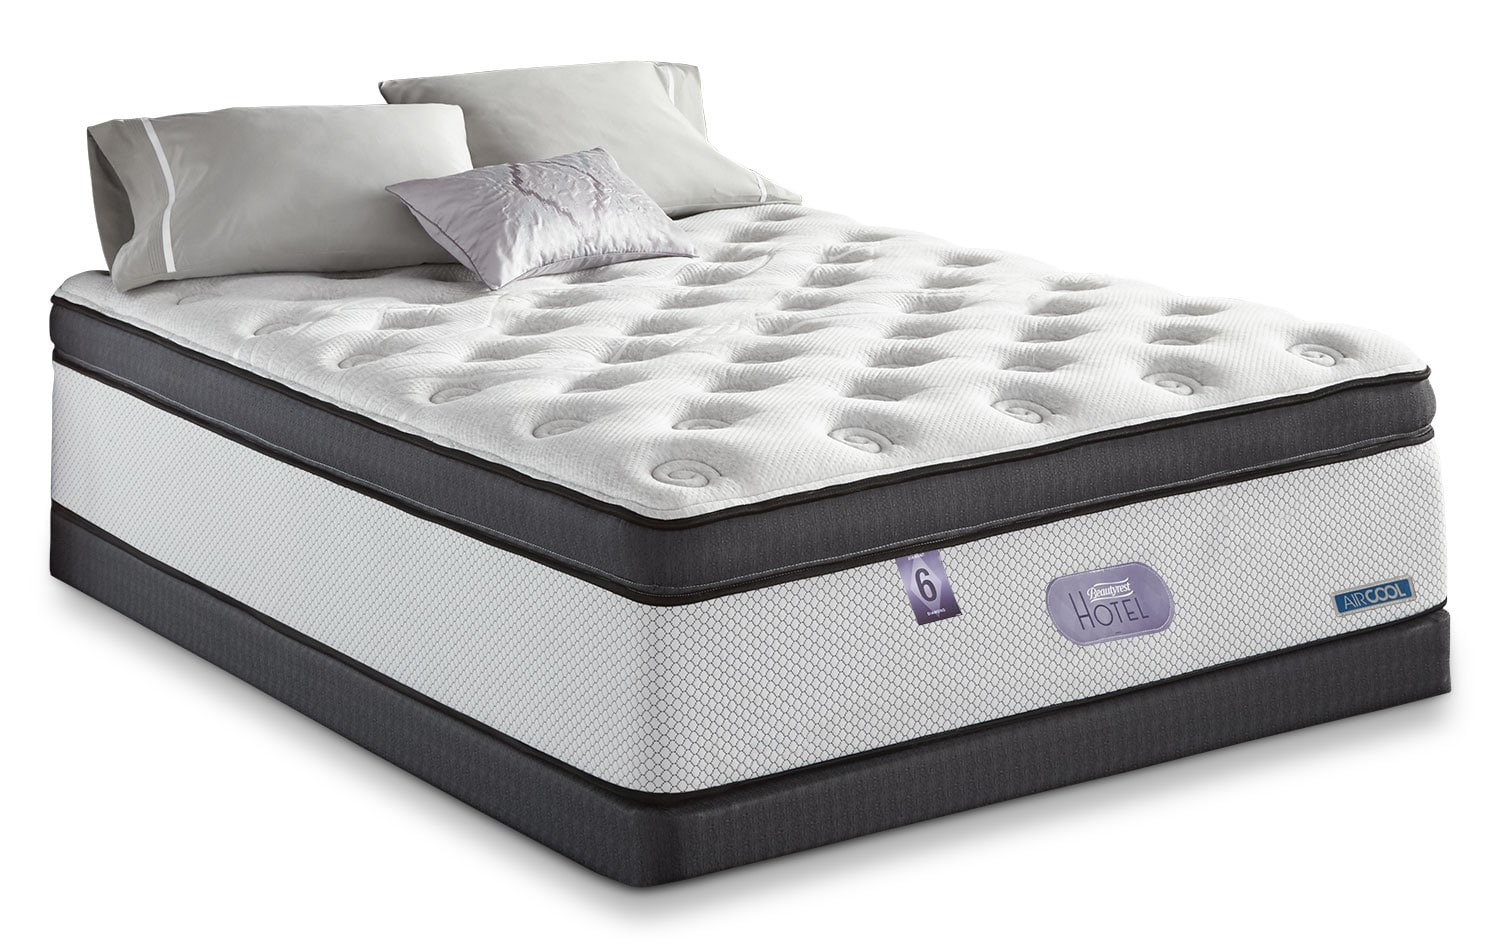 Simmons Beautyrest® Hotel Diamond 6.0 Ultra Comfort Top Plush Queen Mattress Set